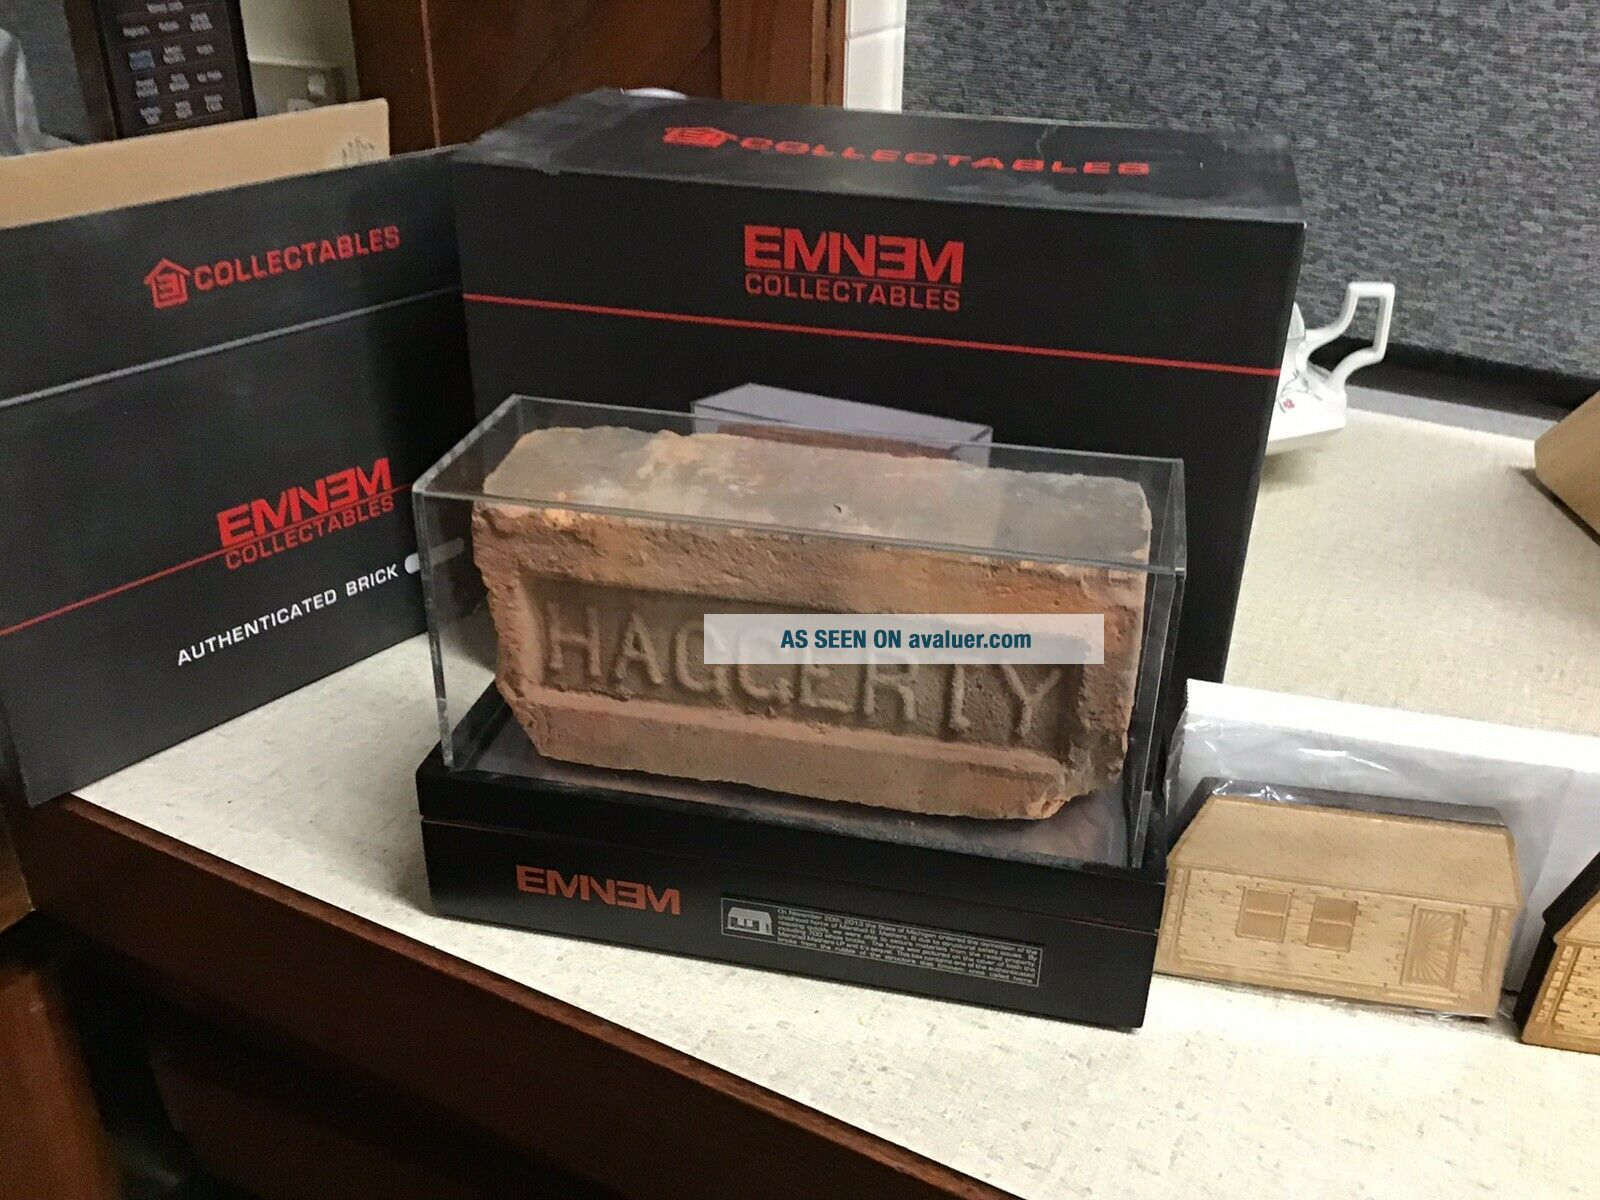 Eminem Signed Authenticated Brick And Dog Tag From Slim Shady's Childhood Home.